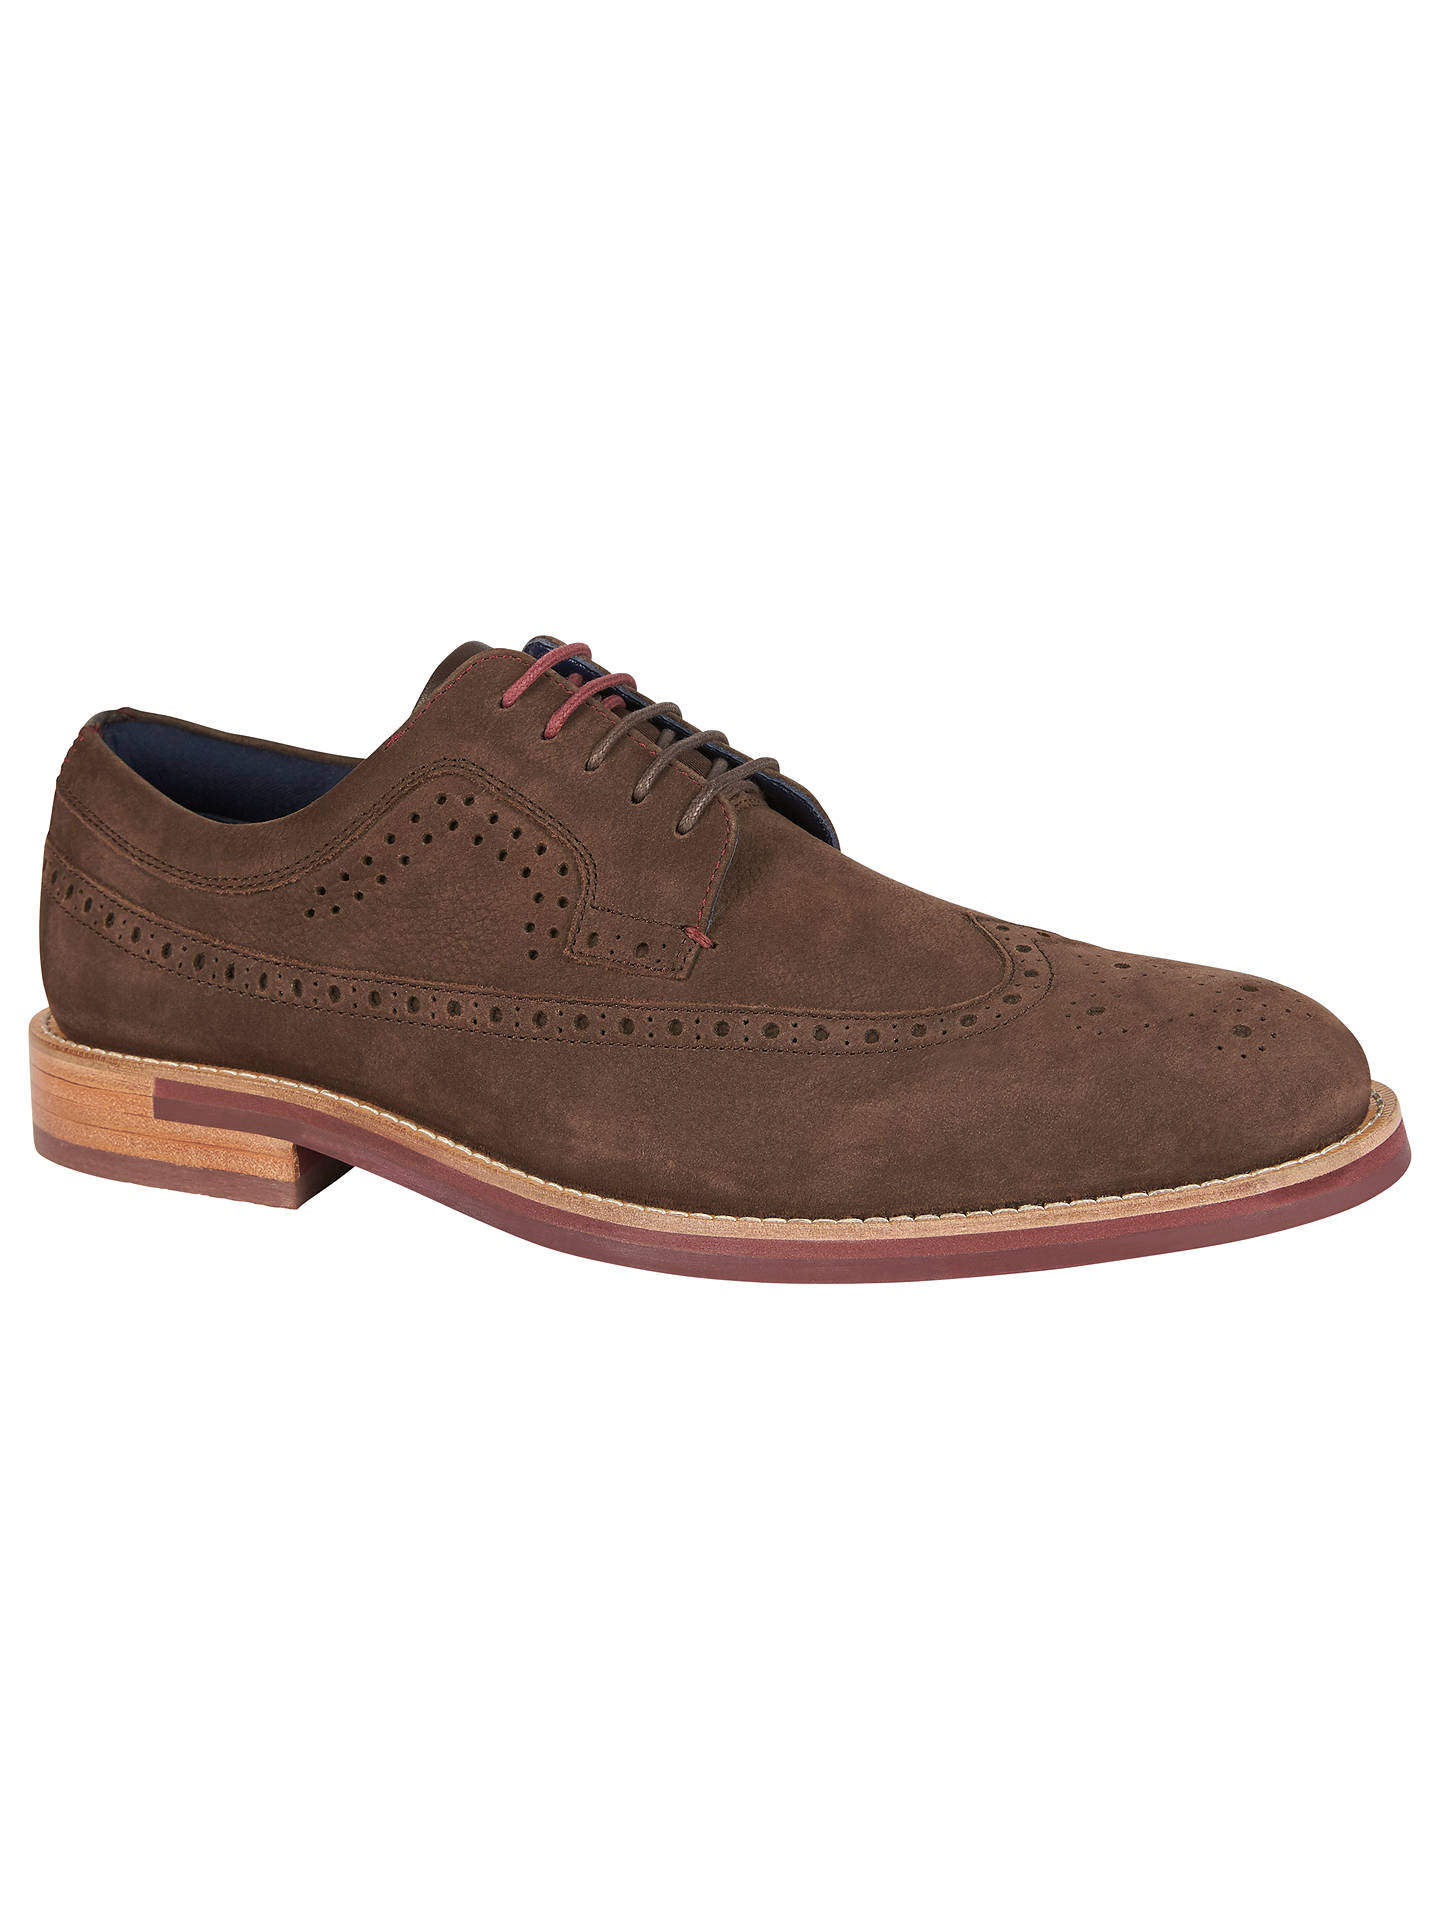 3de564c55744 Ted Baker Fanngo Derby Brogues at John Lewis   Partners